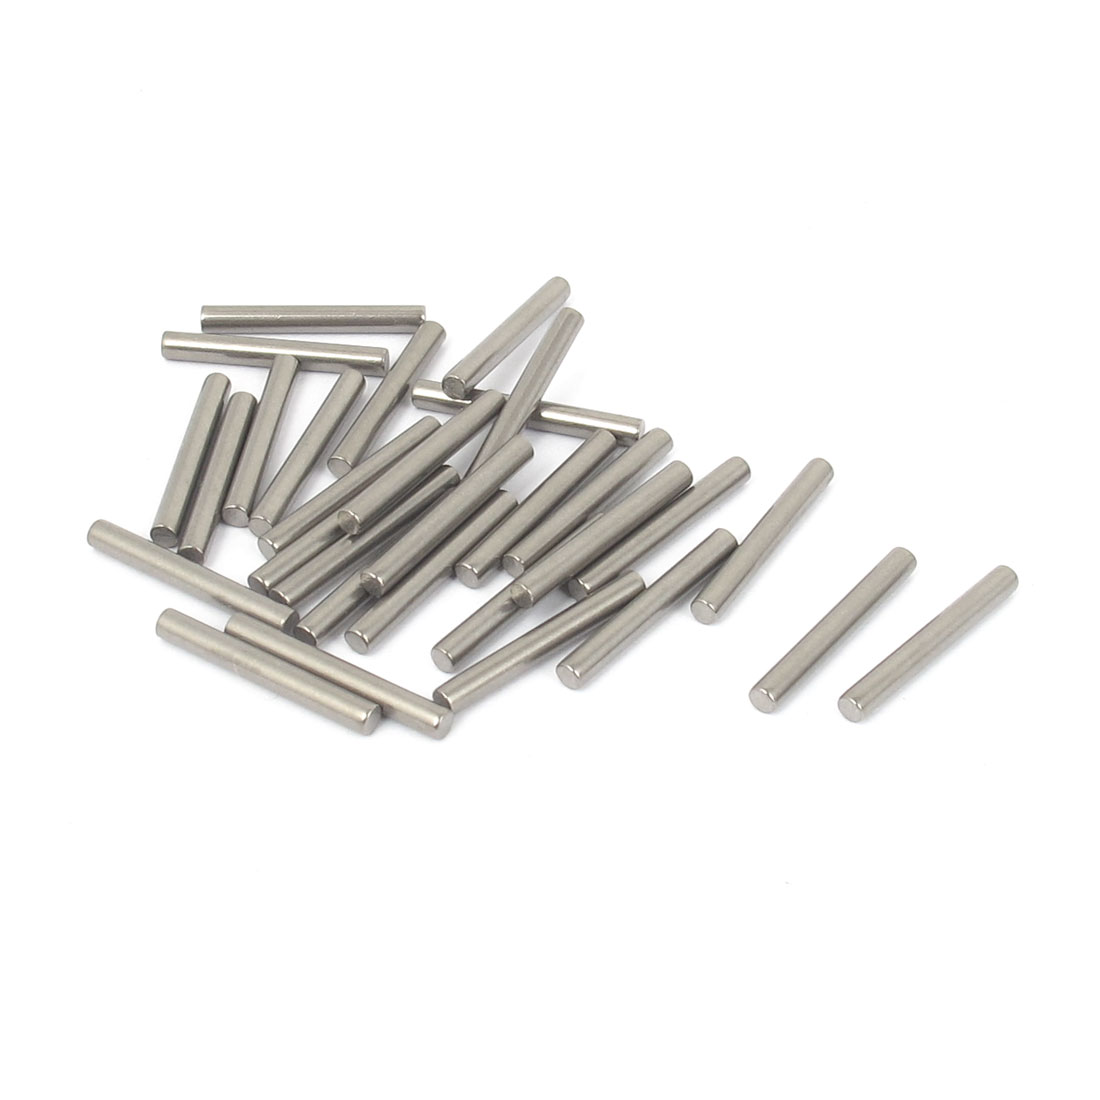 2.5mm x 20mm 304 Stainless Steel Dowel Pins Fasten Elements Silver Tone 30pcs